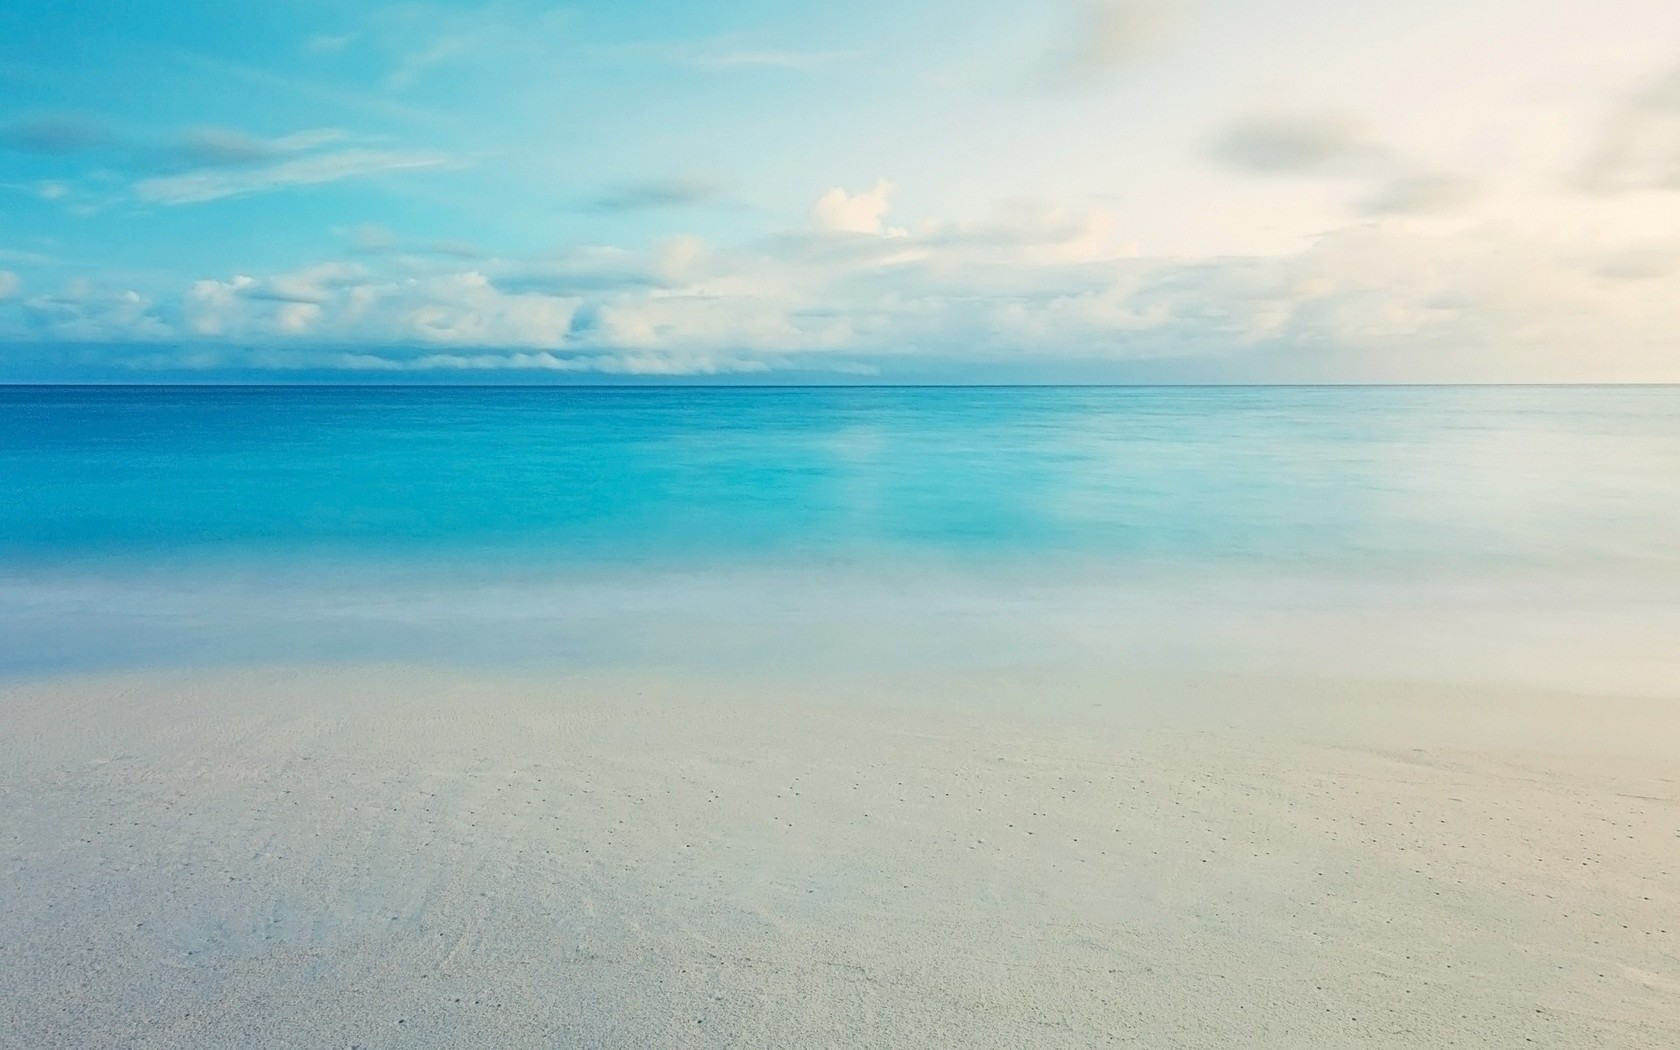 Calm blue ocean wallpaper 14485 1680x1050